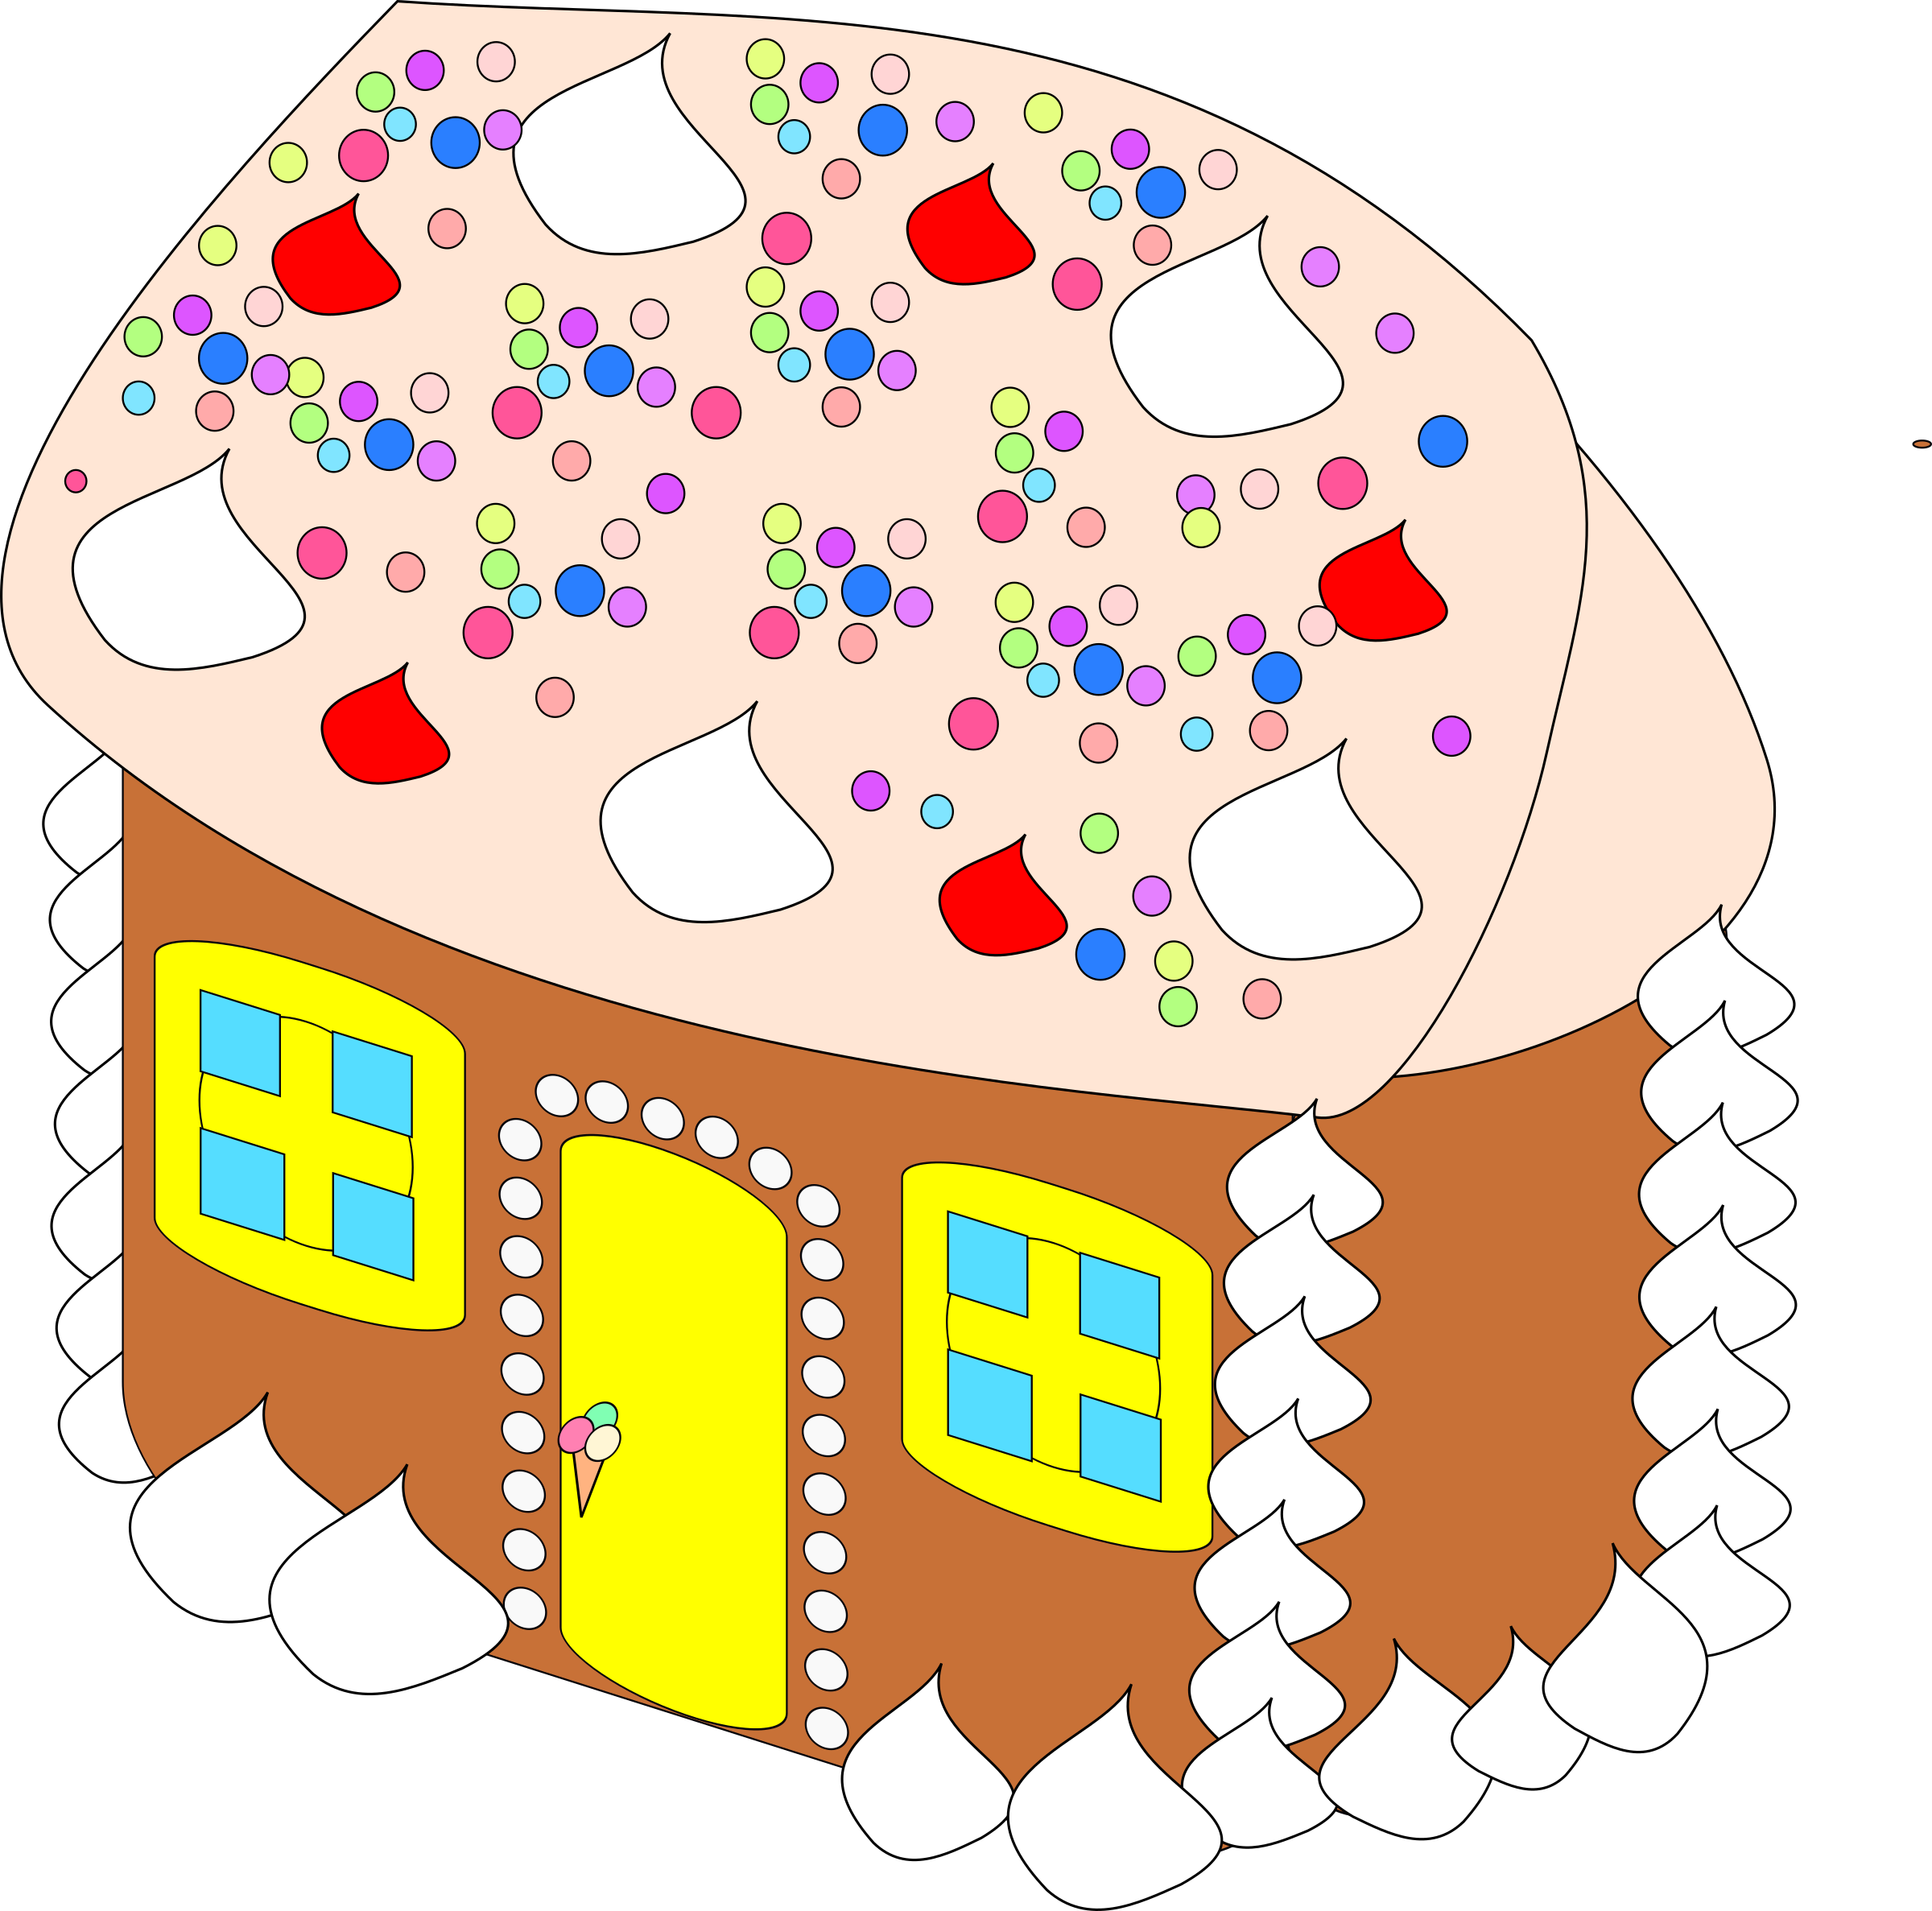 Clipart home home sweet home. House big image png